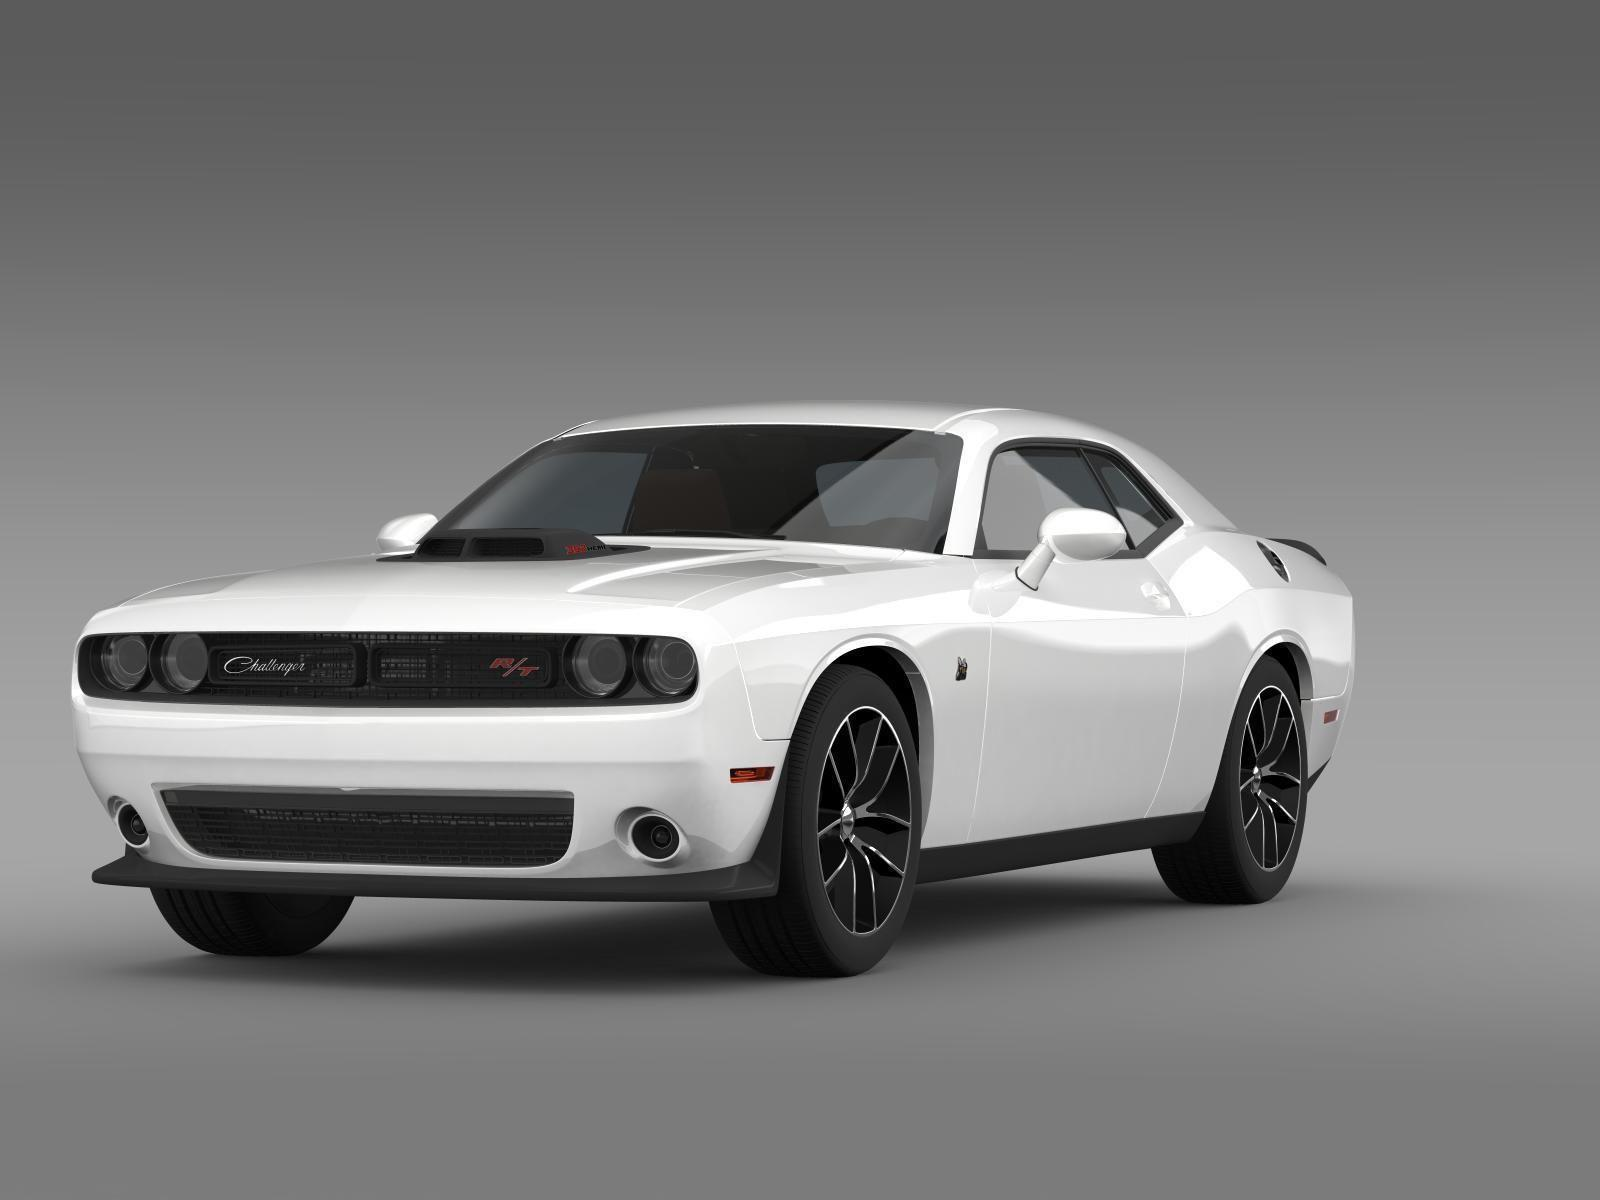 2016 Dodge Challenger Black Wallpapers - Wallpaper Cave